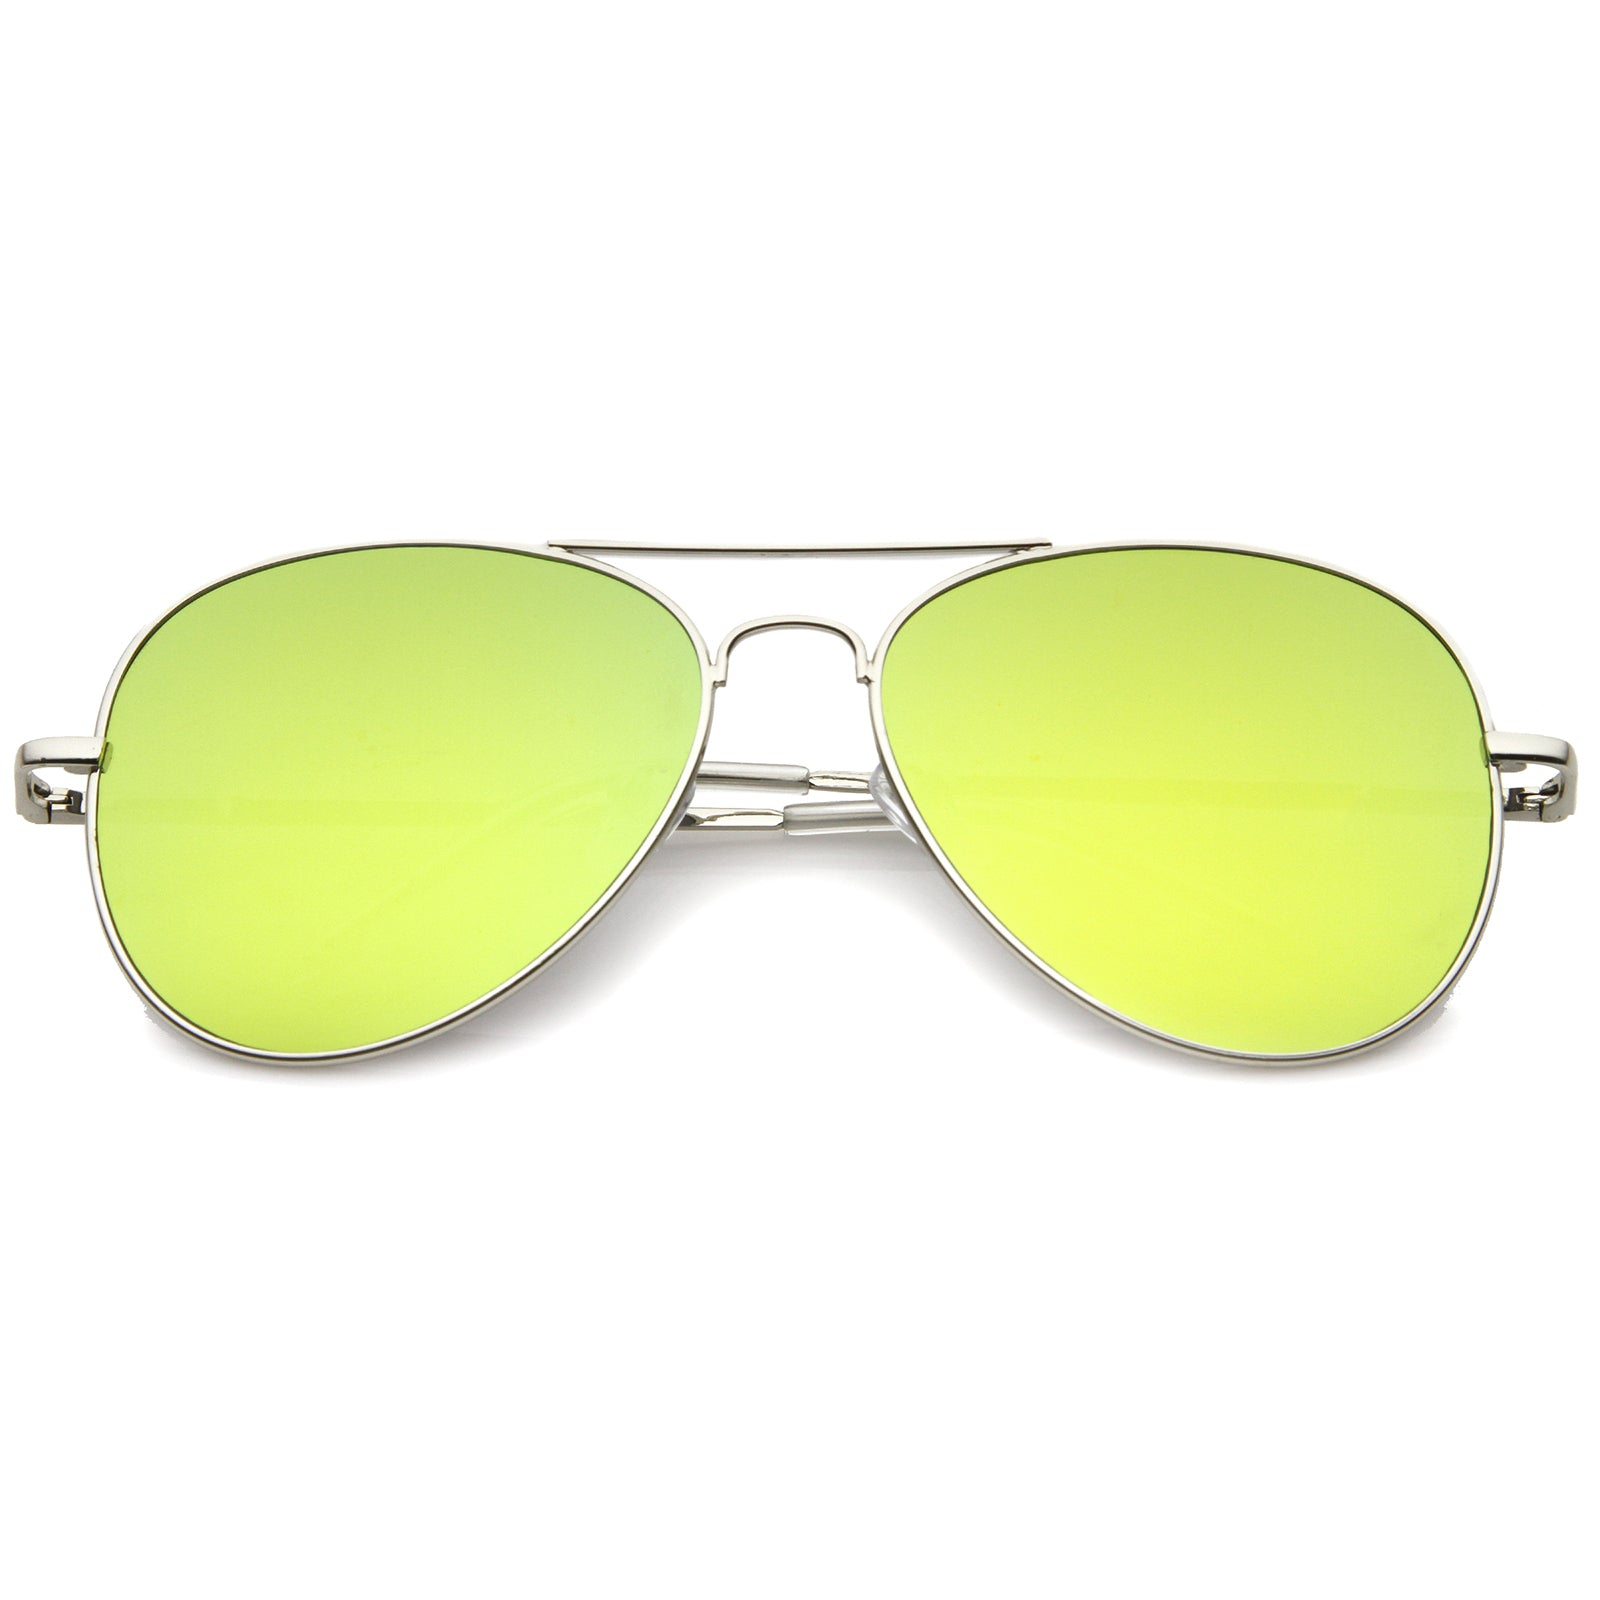 Small Full Metal Color Mirror Teardrop Flat Lens Aviator Sunglasses 56mm - sunglass.la - 8